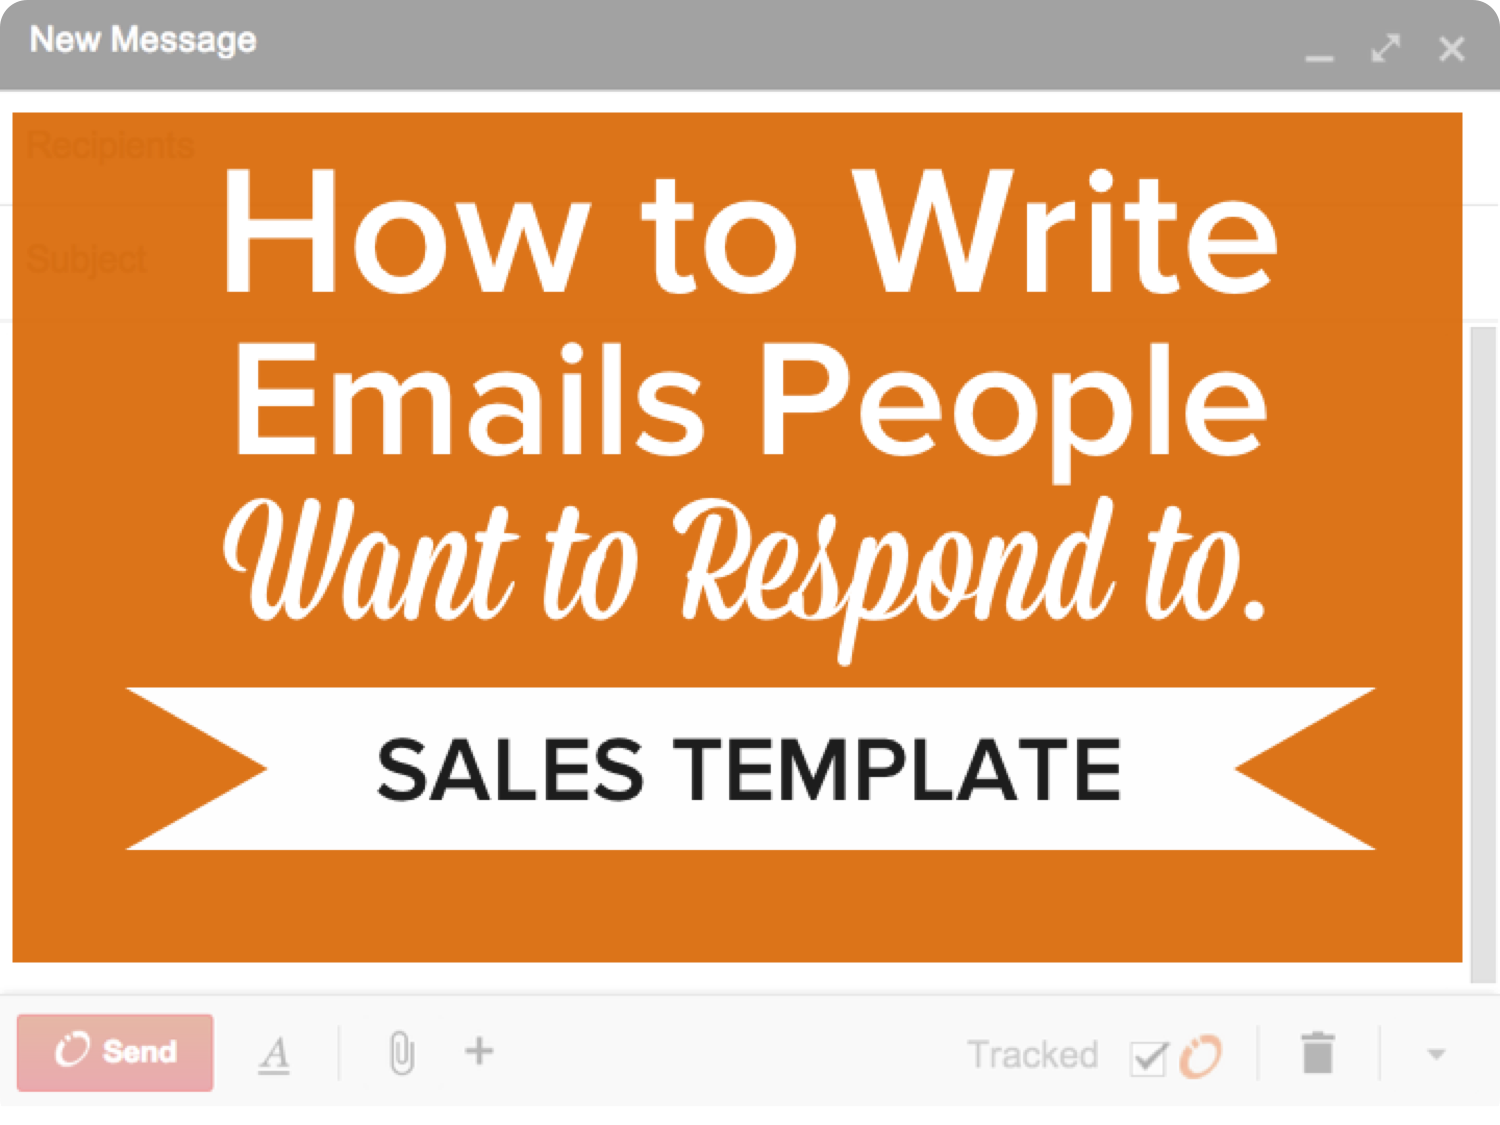 Sales Email Template: How to Write Emails People Want to Respond To [SlideShare]